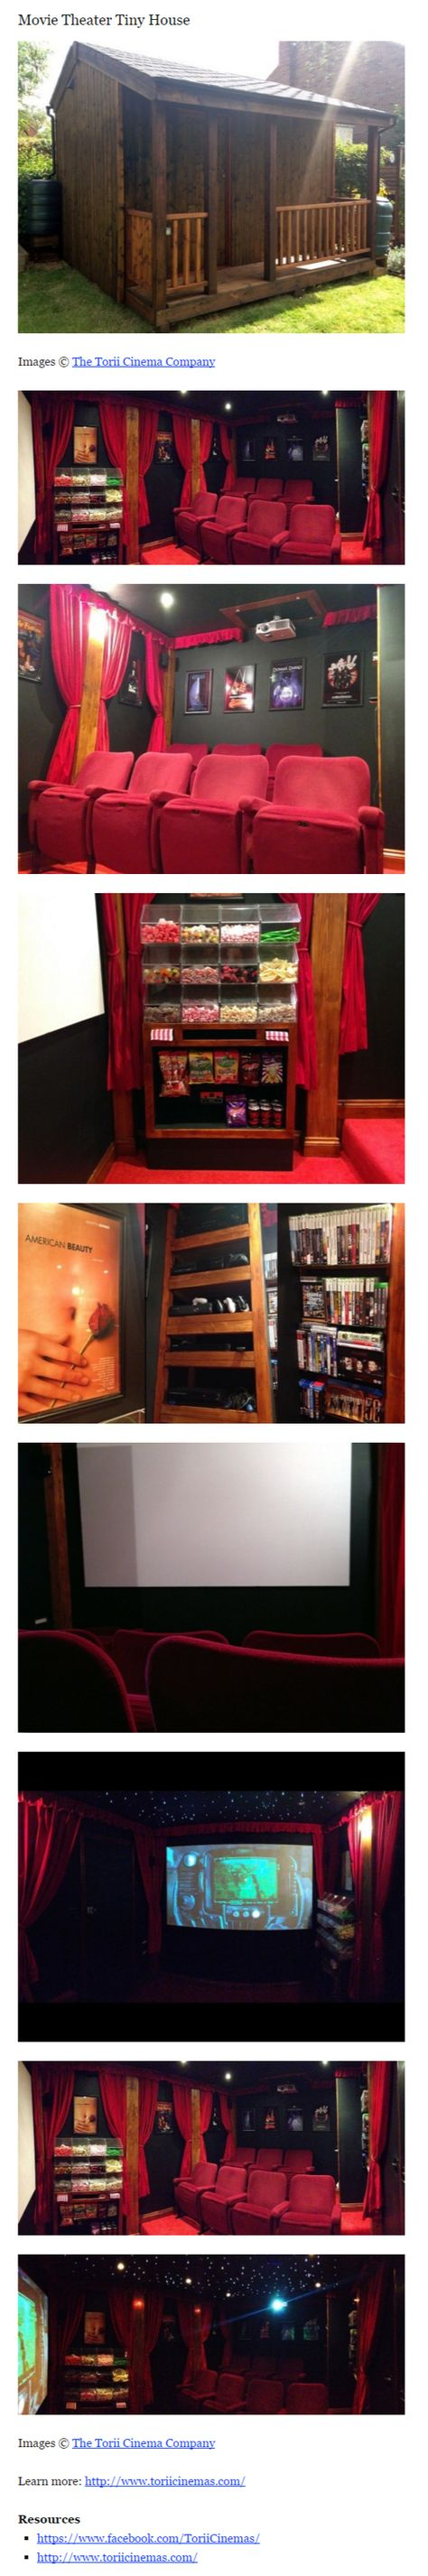 133 best Home Theater images on Pinterest | Movie rooms, Cinema ...